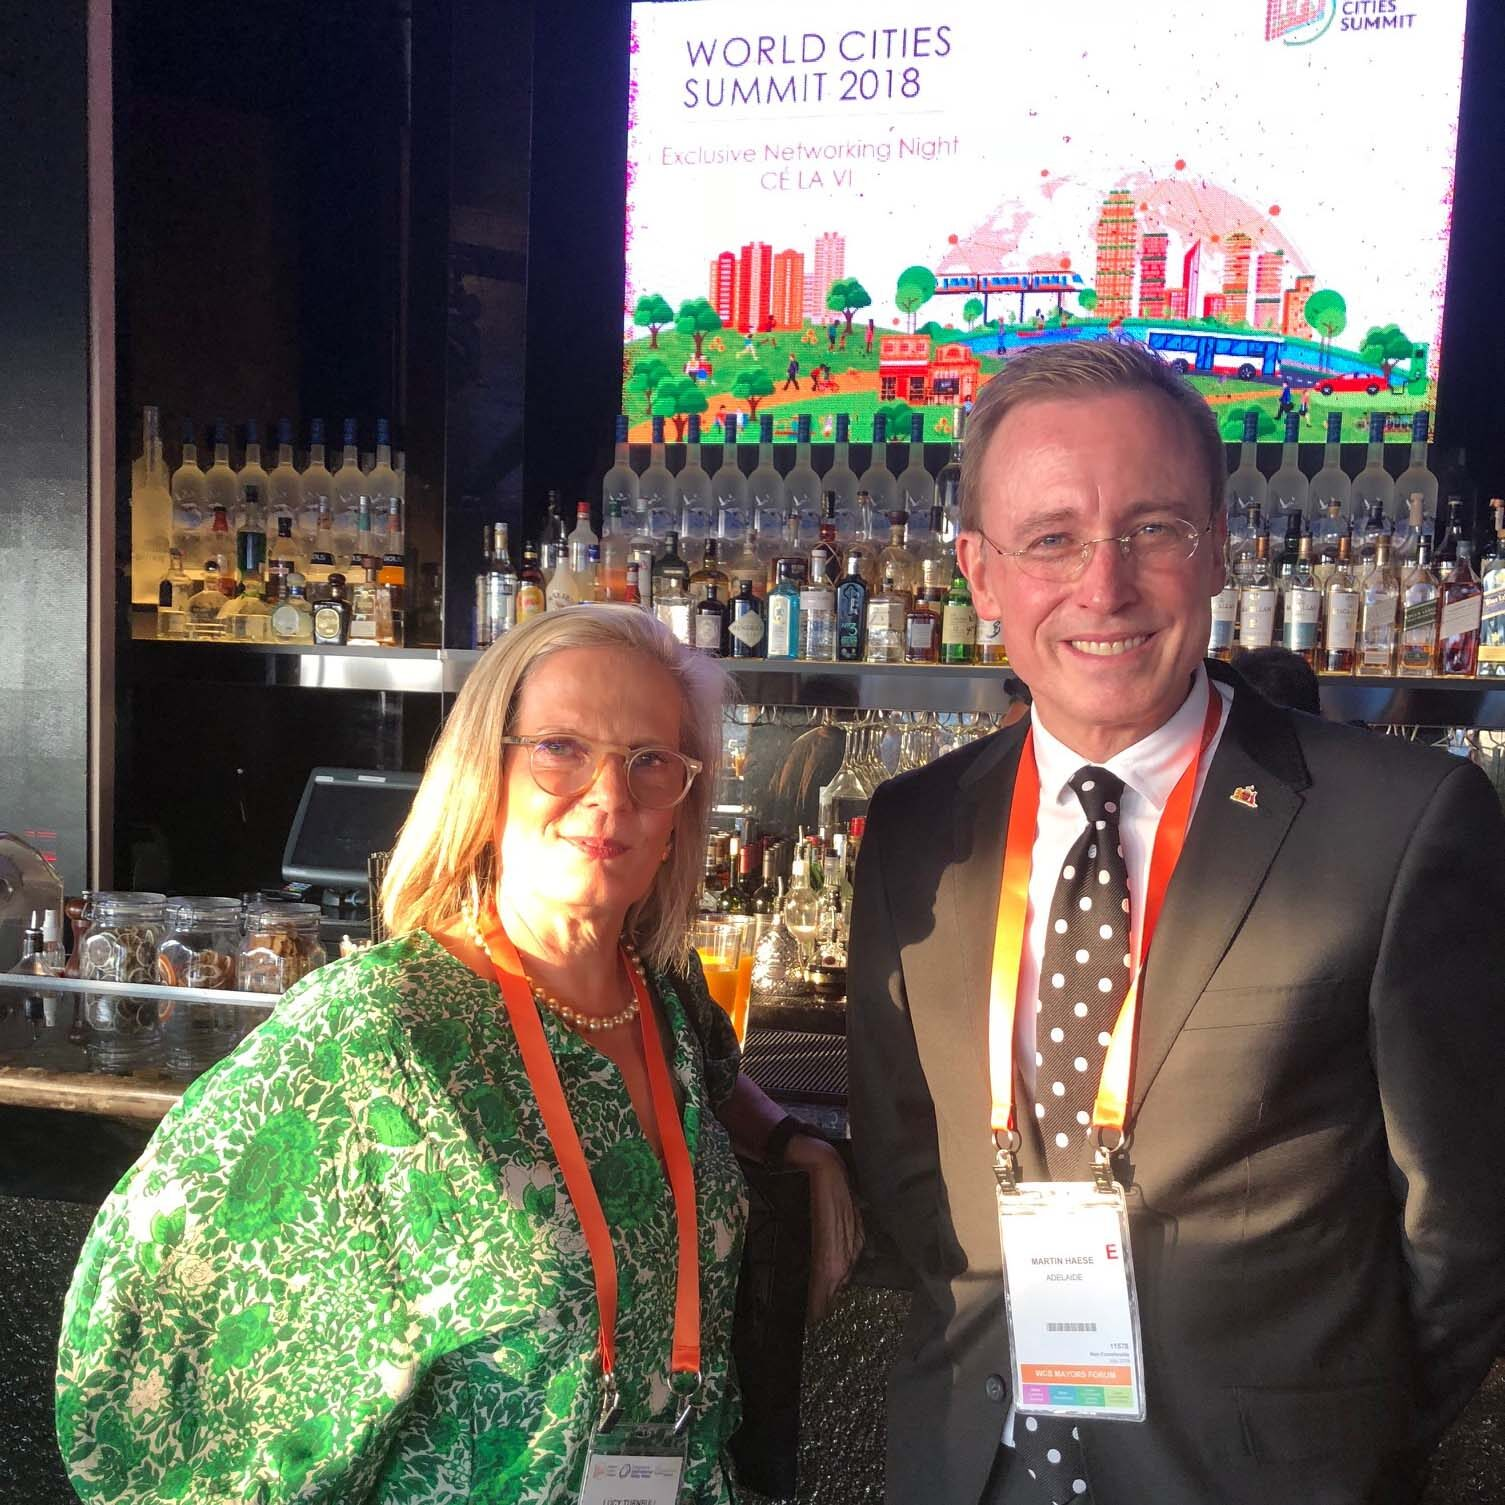 Lord Mayor Martin Haese with Lucy Turnbull AO at the World Cities Summit Singapore 2018